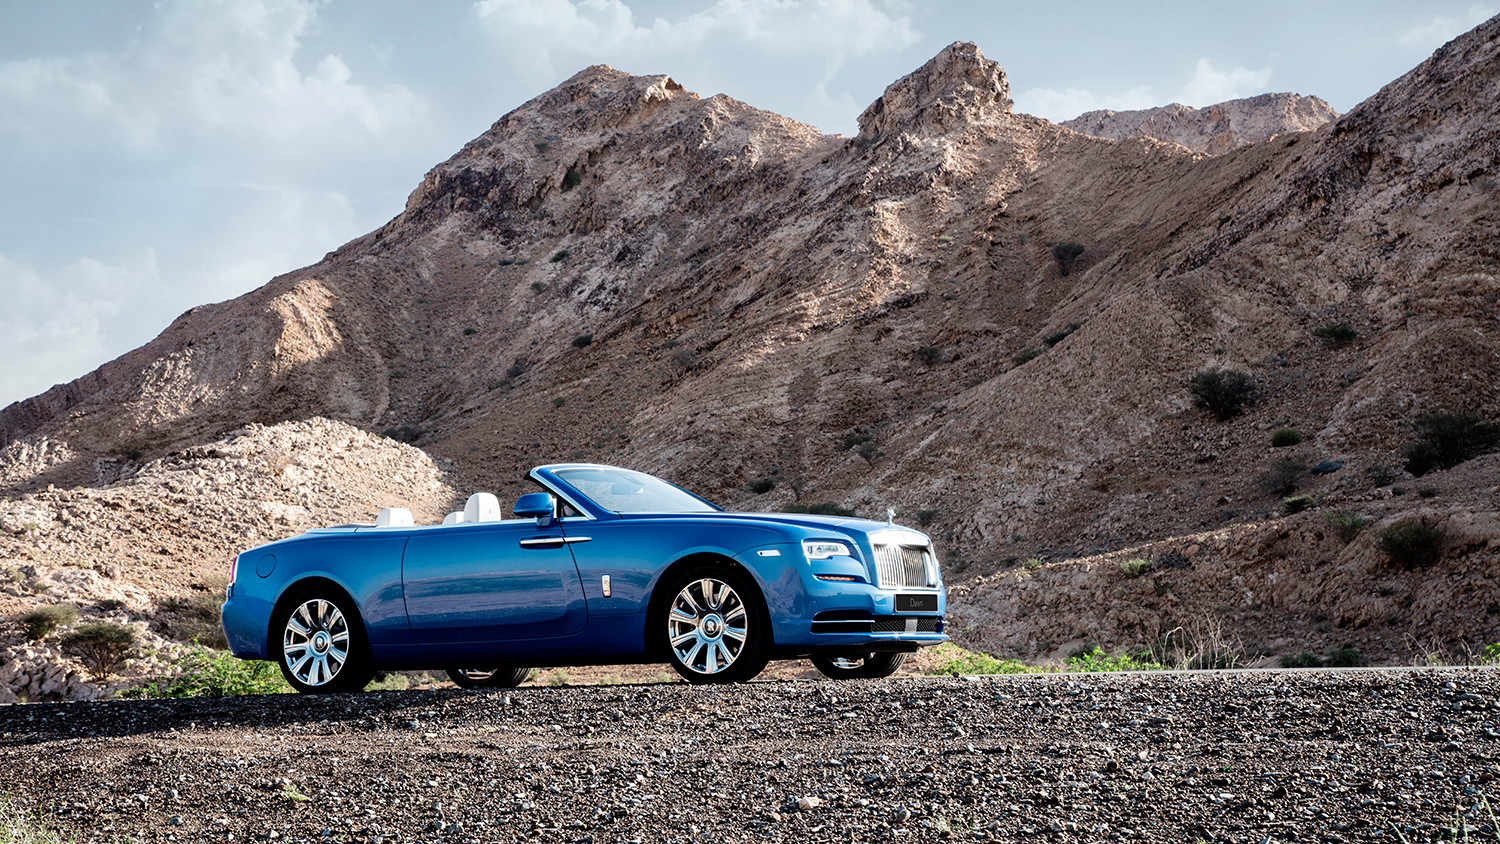 _Rolls_Royce_Exceptional_Encounter_1500x844px_04.jpg